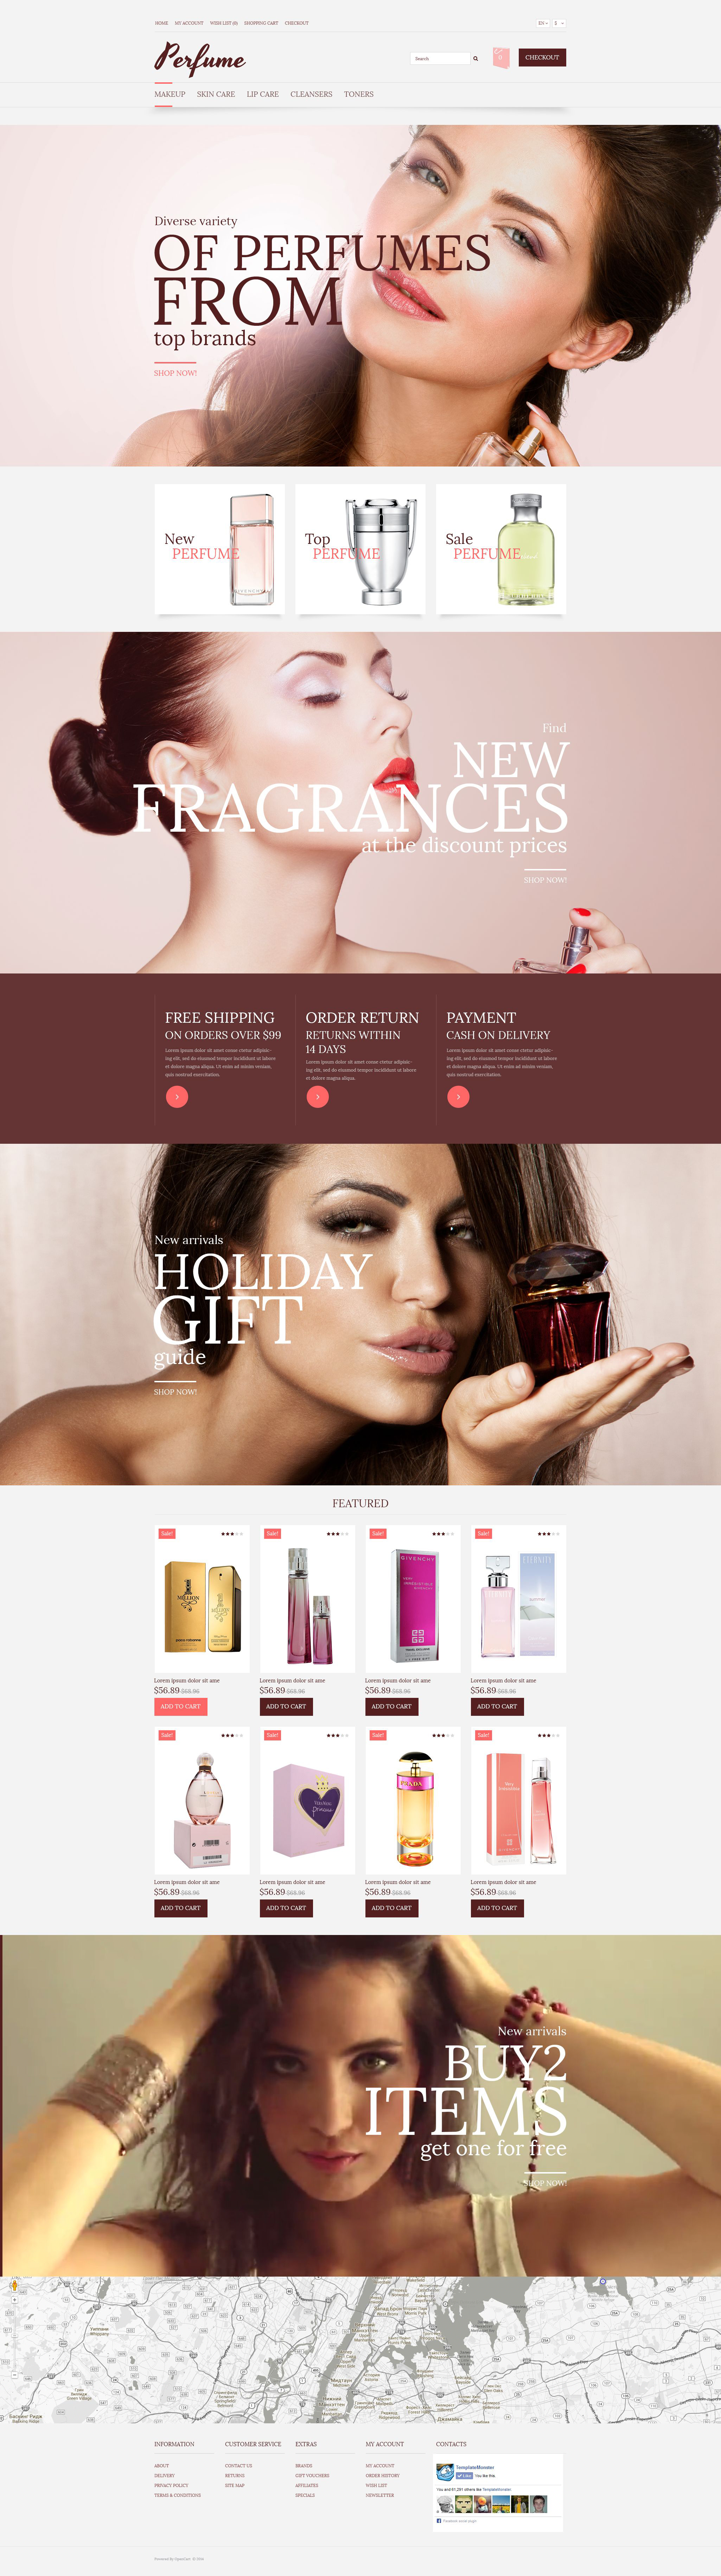 The Perfume Online Shop OpenCart Design 53123, one of the best OpenCart templates of its kind (beauty, most popular), also known as perfume online shop OpenCart template, cosmetic OpenCart template, beauty OpenCart template, fashion OpenCart template, health care OpenCart template, women solution OpenCart template, service OpenCart template, catalogue OpenCart template, product OpenCart template, gift OpenCart template, skincare OpenCart template, hair care OpenCart template, style OpenCart template, cream OpenCart template, natural OpenCart template, rejuvenation OpenCart template, damping OpenCart template, lifting OpenCart template, peeling OpenCart template, specials OpenCart template, lipstick OpenCart template, mascara OpenCart template, nail OpenCart template, polish OpenCart template, shampoo OpenCart template, body OpenCart template, milk OpenCart template, lotion OpenCart template, hand OpenCart template, client and related with perfume online shop, cosmetic, beauty, fashion, health care, women solution, service, catalogue, product, gift, skincare, hair care, style, cream, natural, rejuvenation, damping, lifting, peeling, specials, lipstick, mascara, nail, polish, shampoo, body, milk, lotion, hand, client, etc.